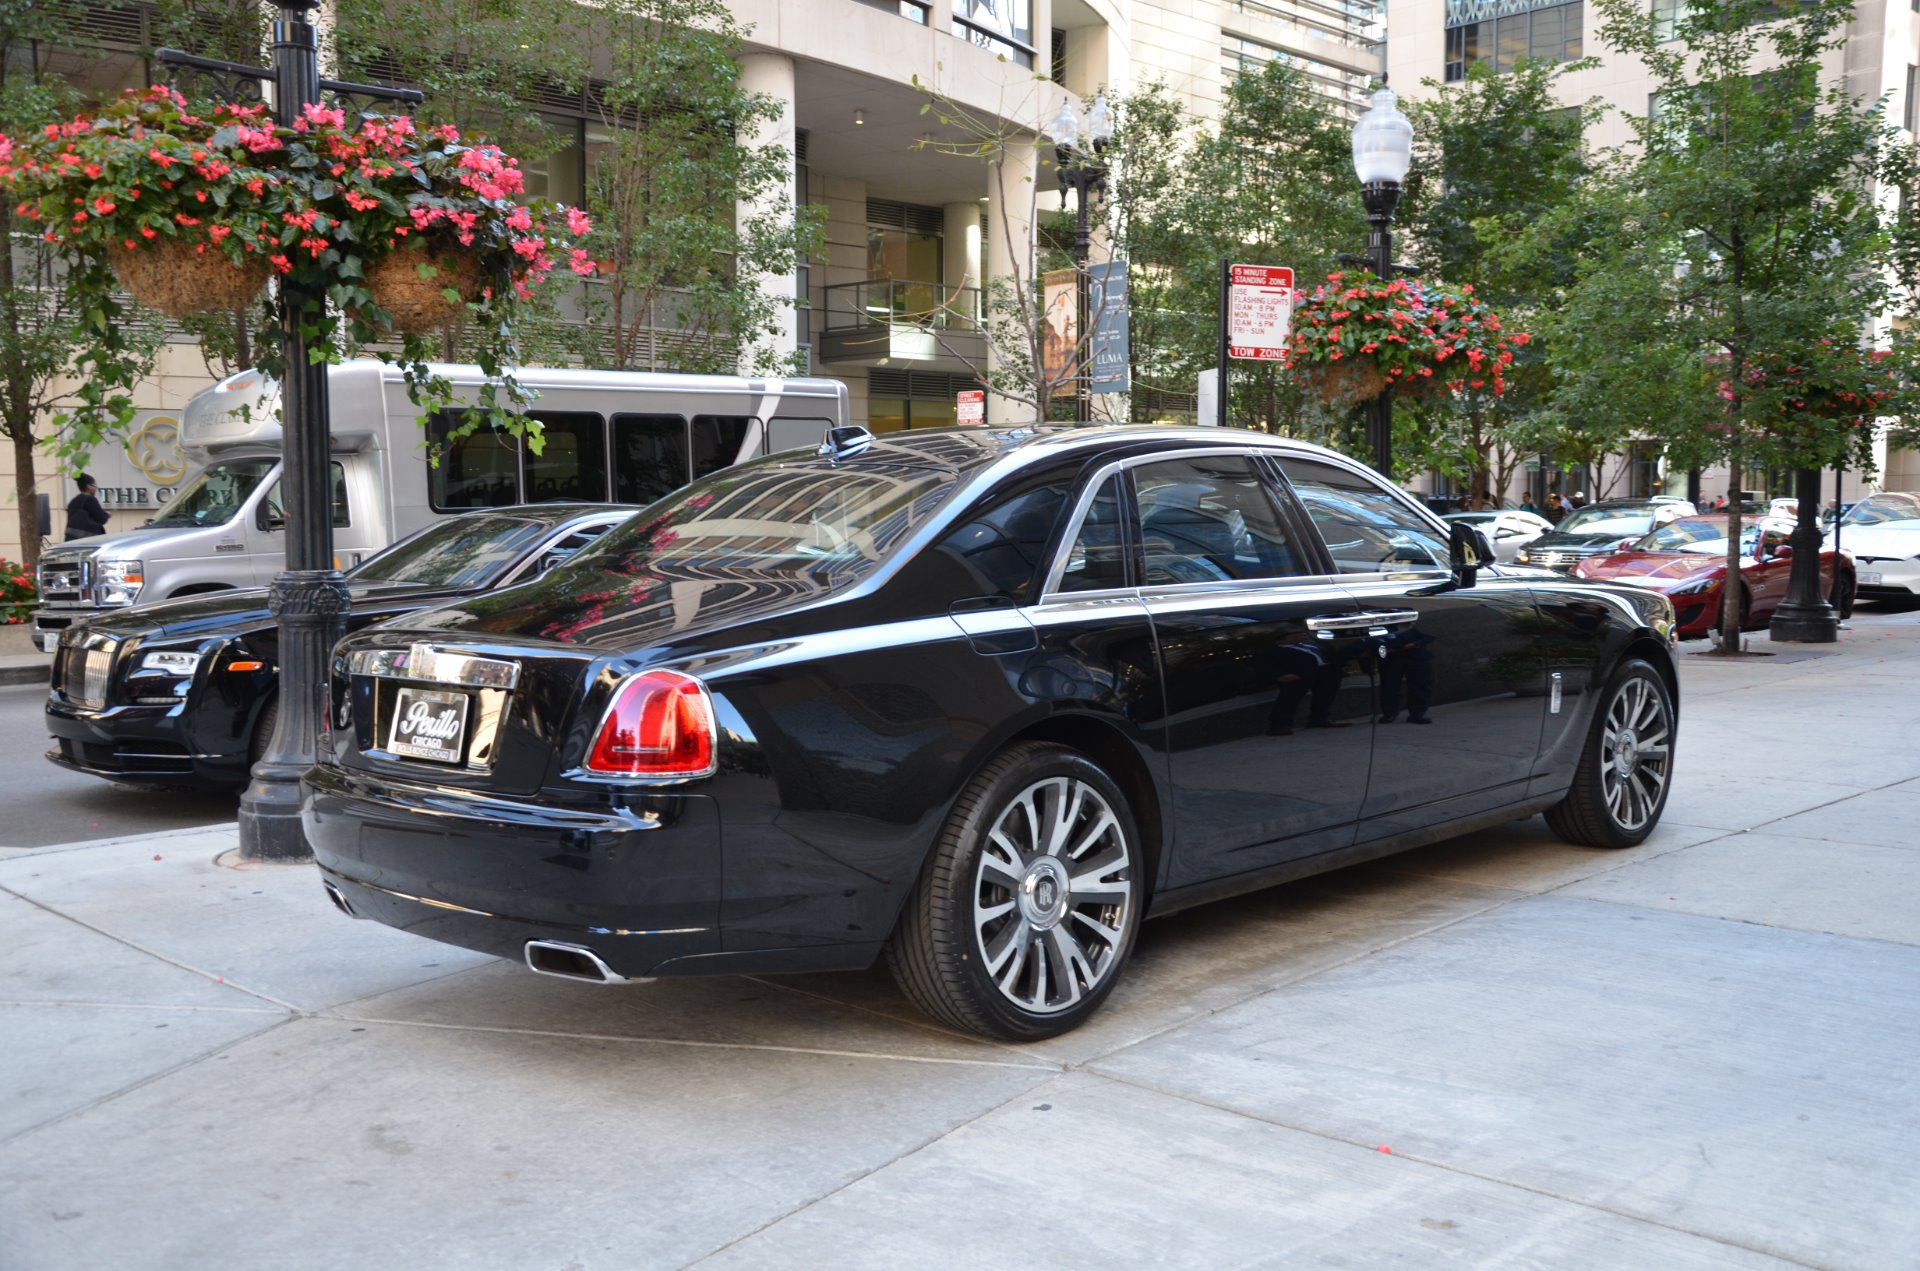 2018 rolls royce ghost stock r437 for sale near chicago. Black Bedroom Furniture Sets. Home Design Ideas